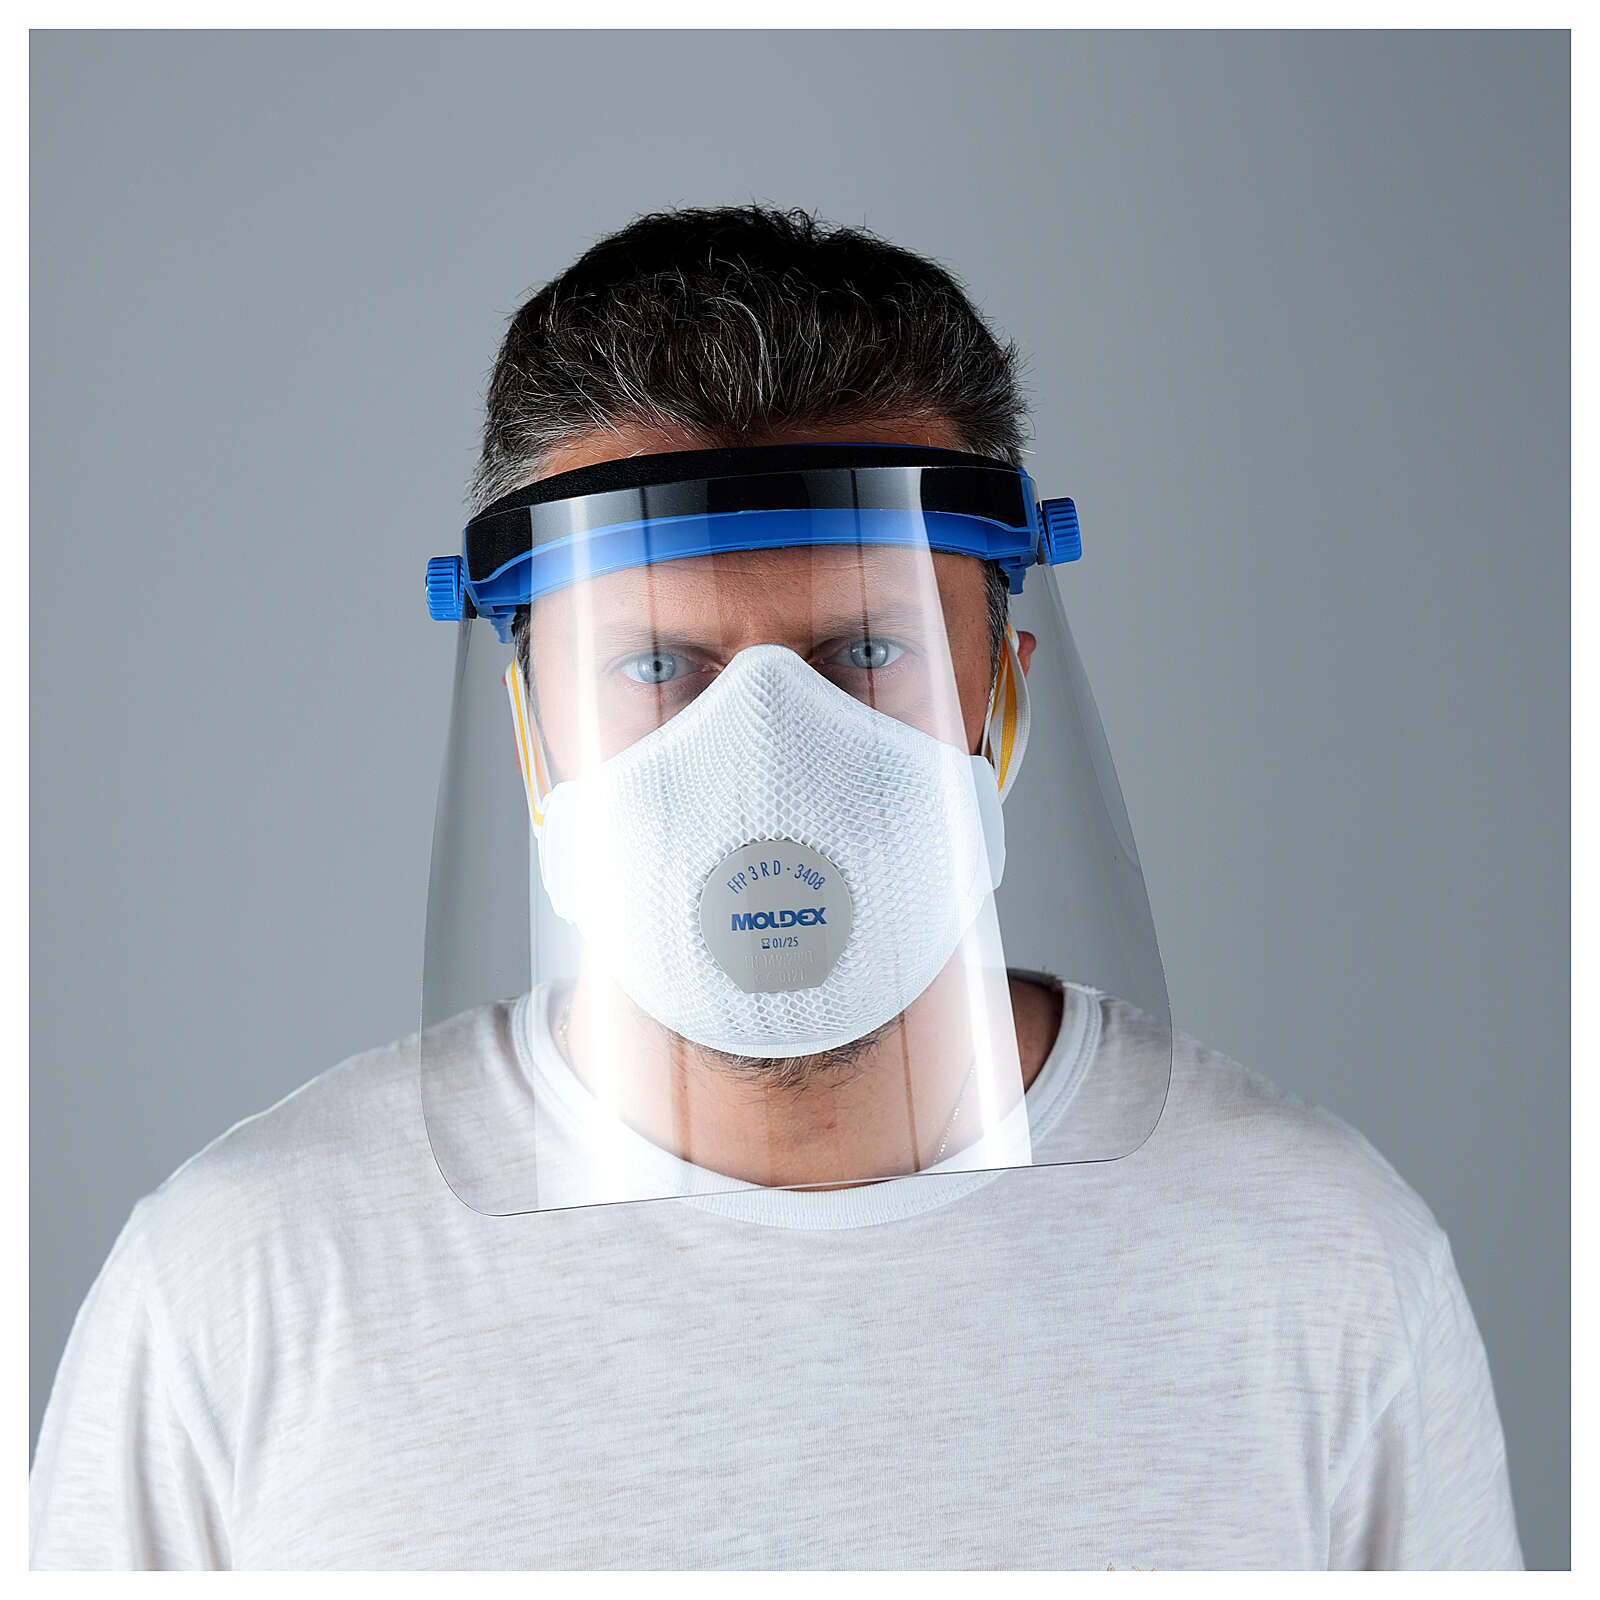 Visière de protection en plastique transparent anti-contagion 3